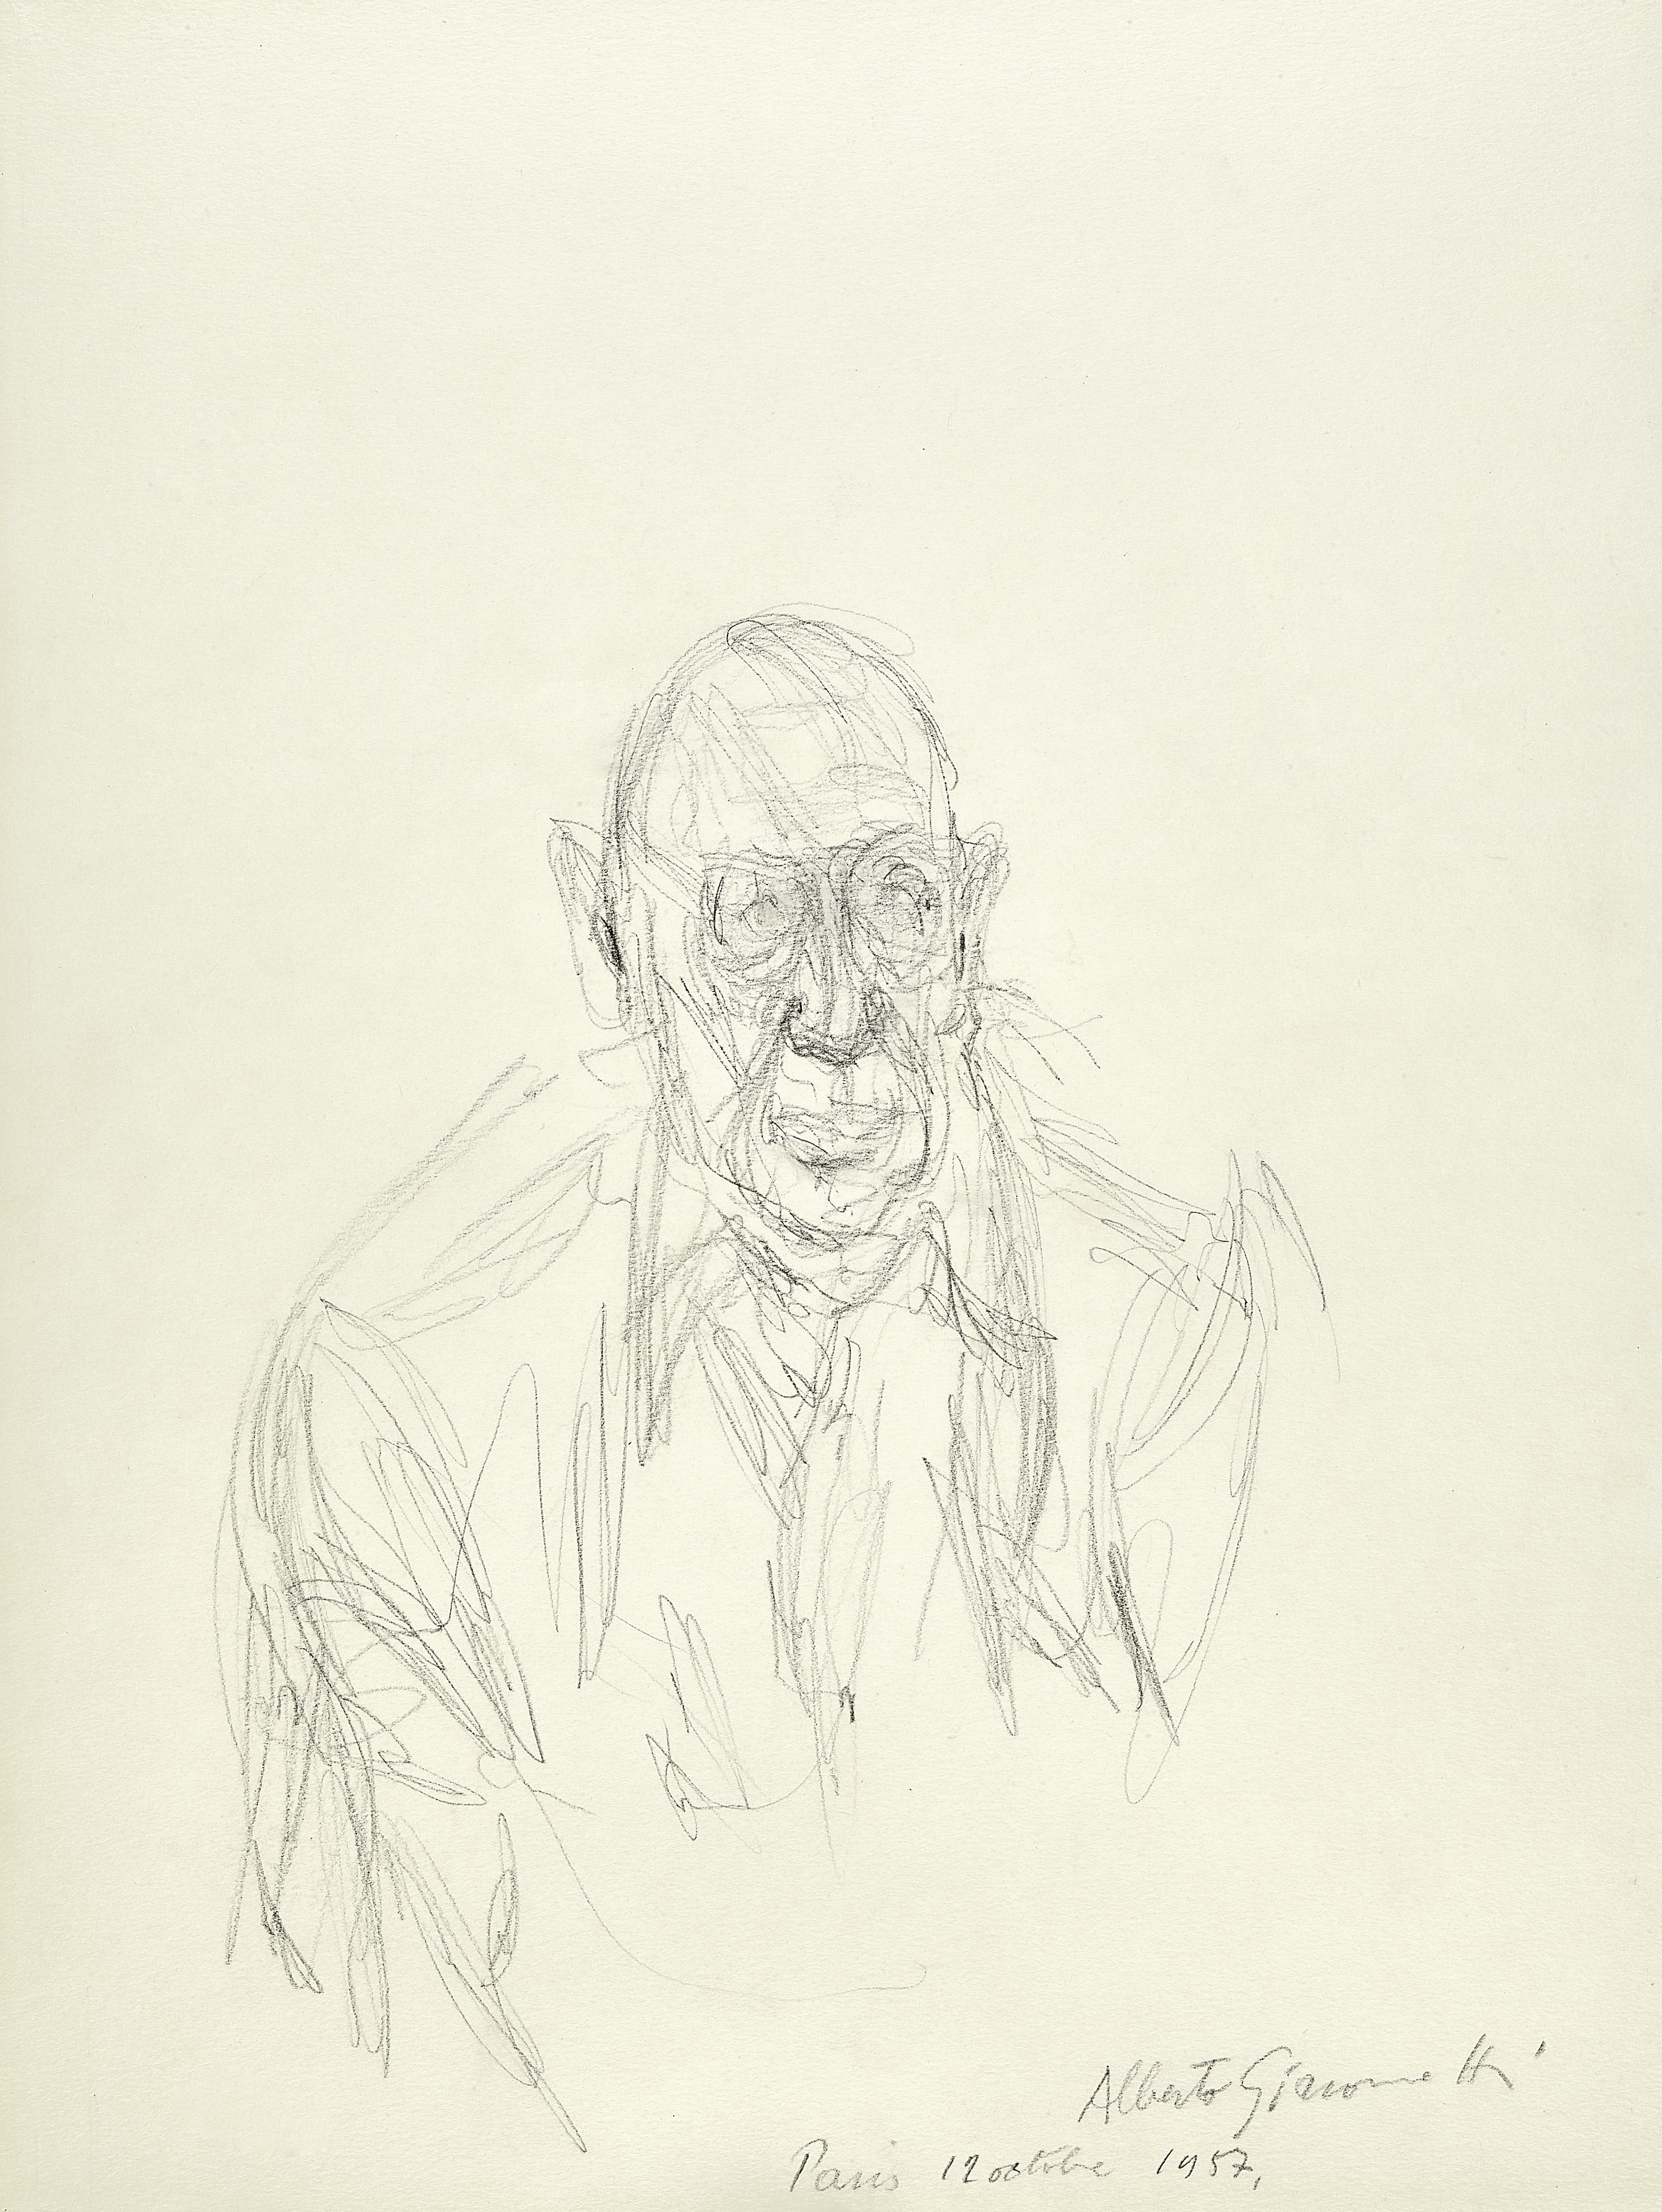 Lot 18 - ALBERTO GIACOMETTI (1901-1966) Igor Stravinsky 18 5/8 x 12 3/4 in (47.3 x 32.4 cm) (Executed on O...